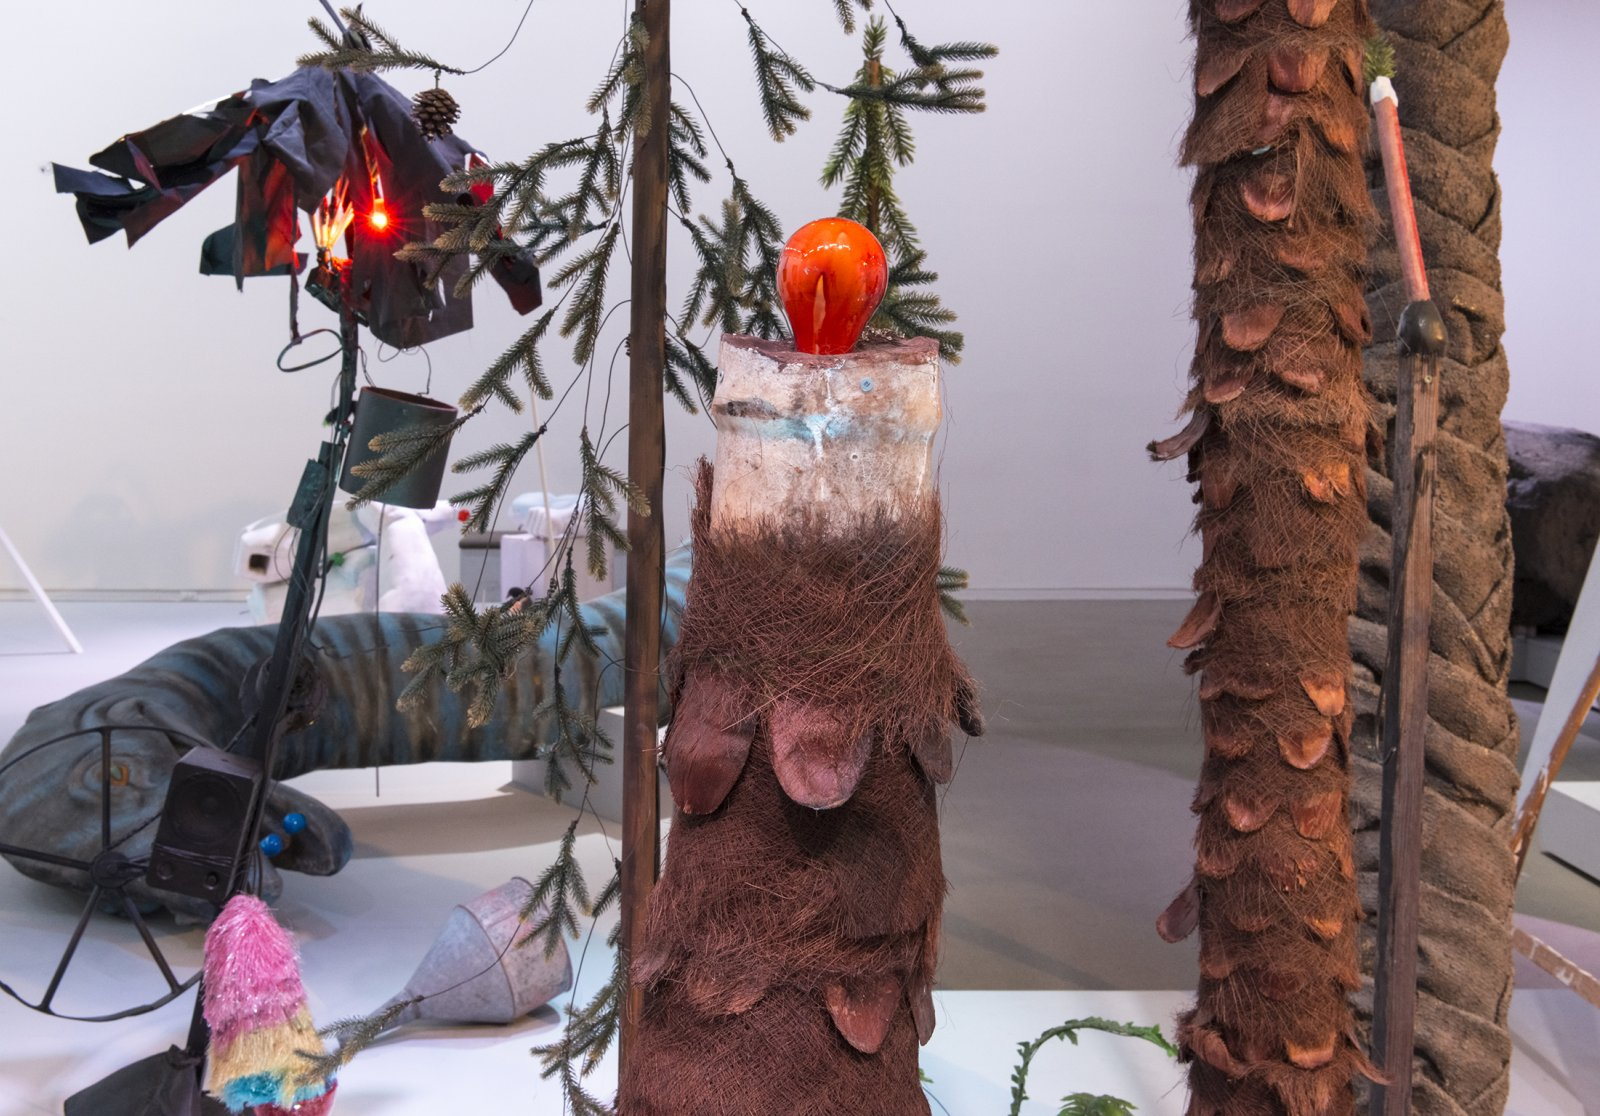 Geoffrey Farmer, Let's Make The Water Turn Black, 2013, mixed media, dimensions variable. Installation view, How Do I Fit This Ghost in My Mouth?, Vancouver Art Gallery, 2015 by Geoffrey Farmer